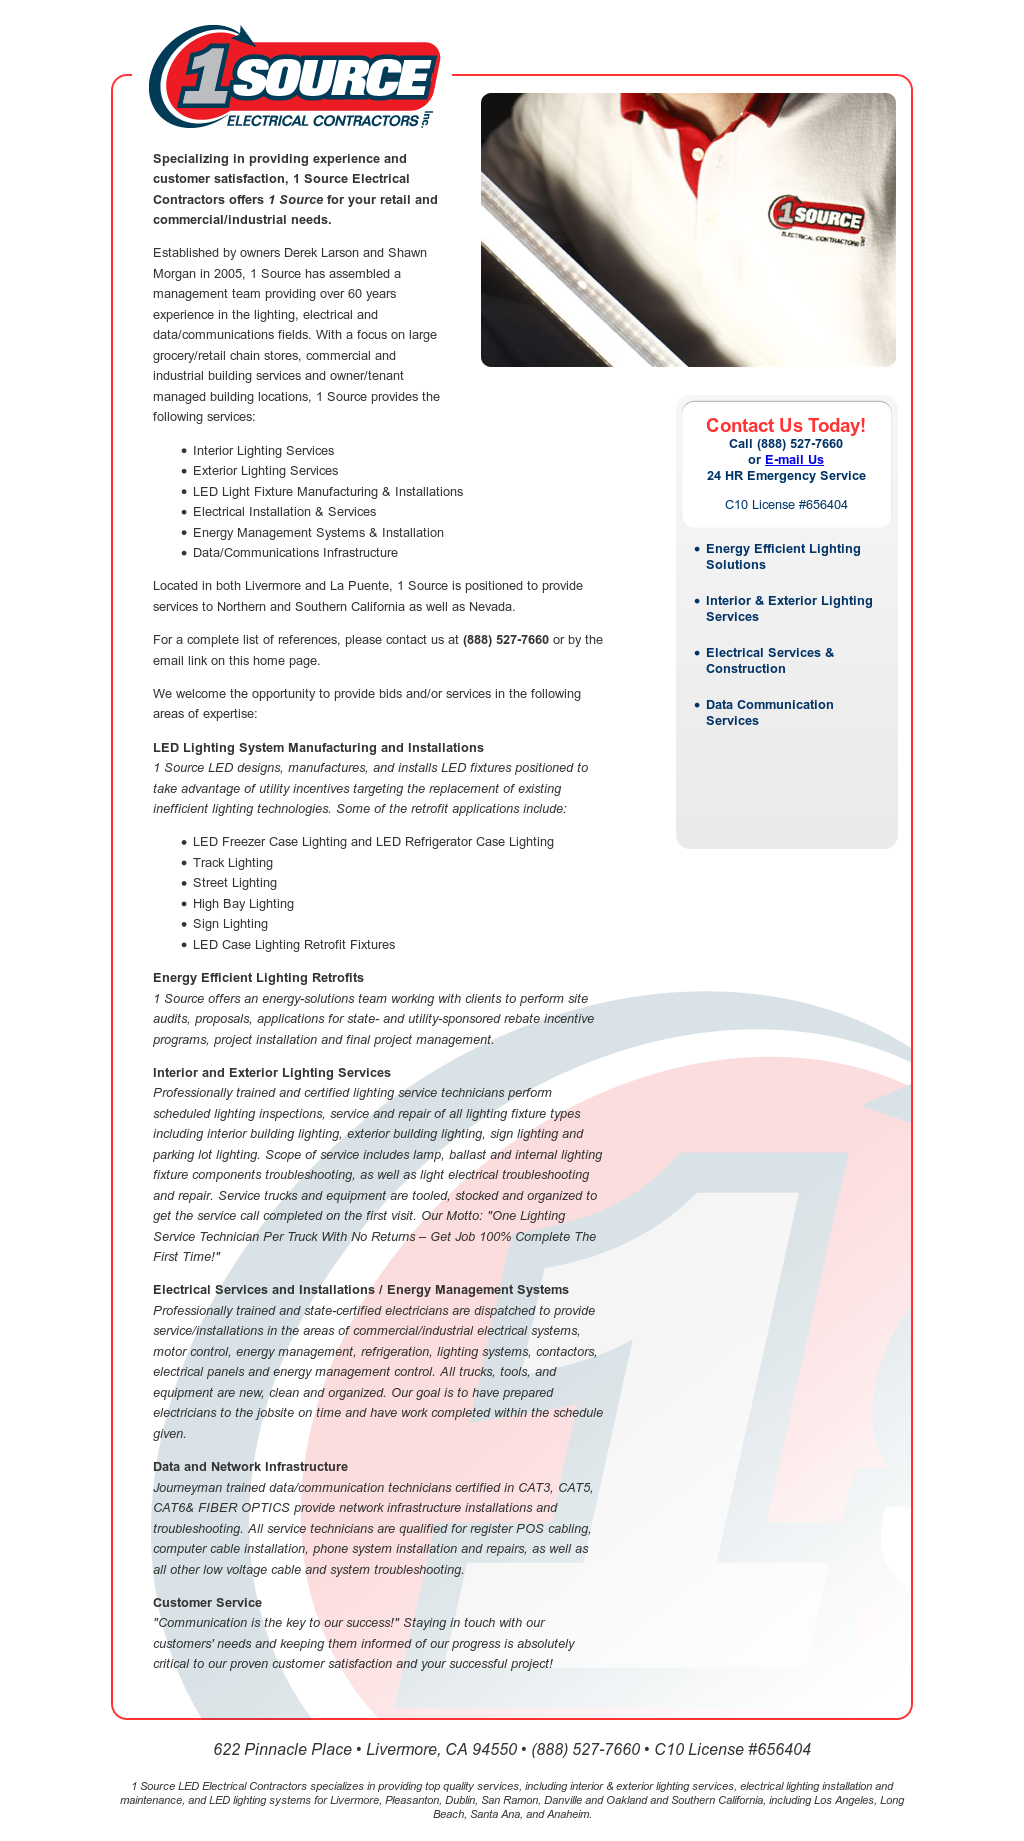 1 Source Electrical Contractors Competitors, Revenue and Employees ...